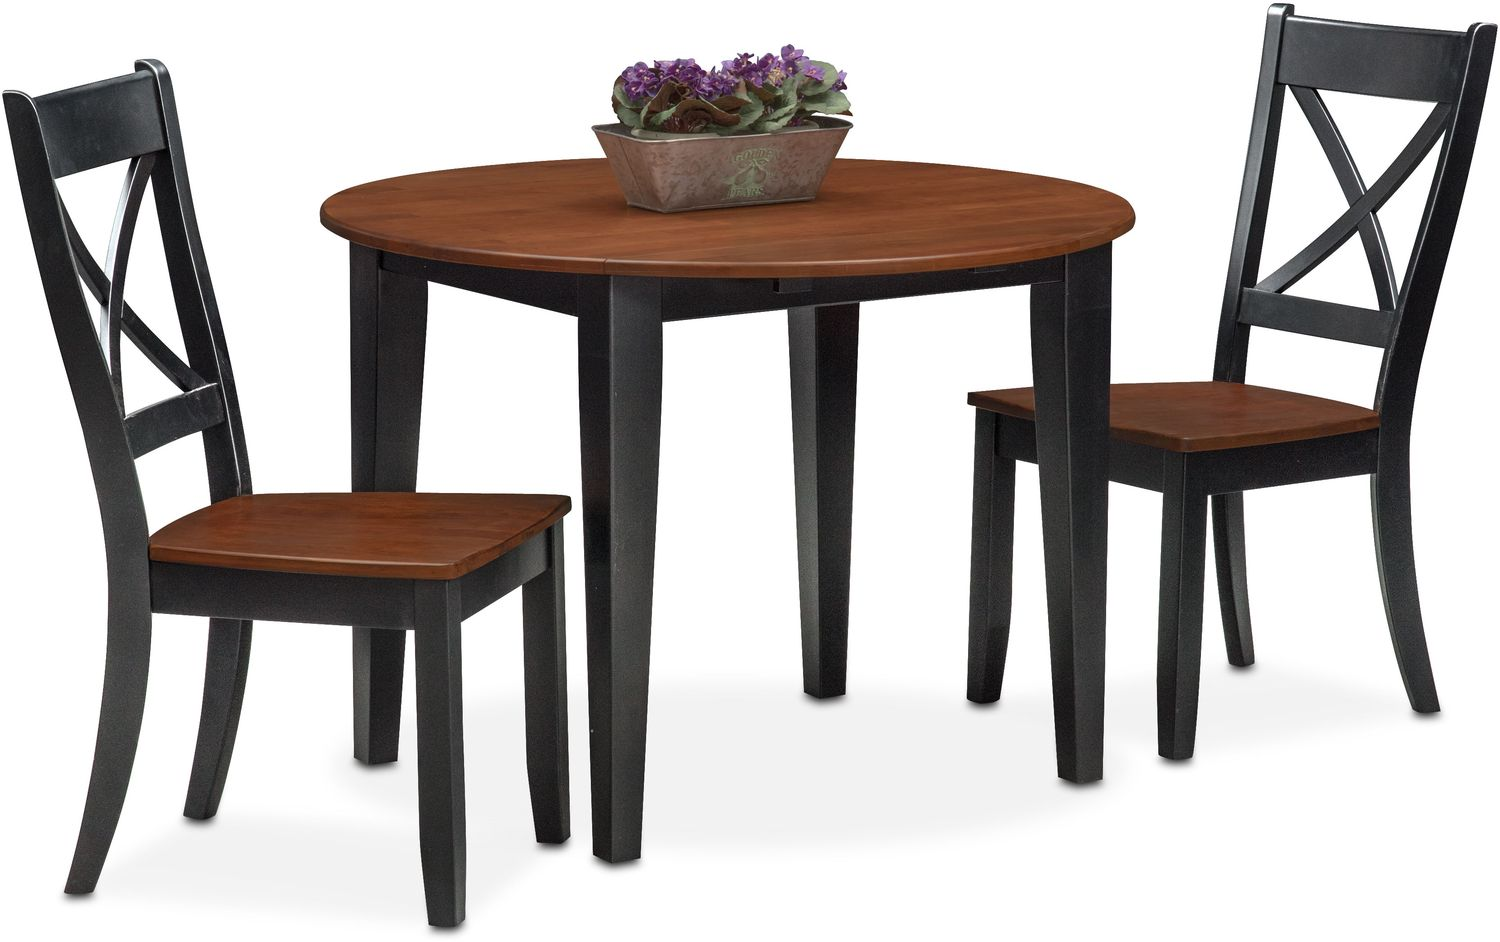 Nantucket drop leaf table and 2 side chairs black and for Black dining table with leaf